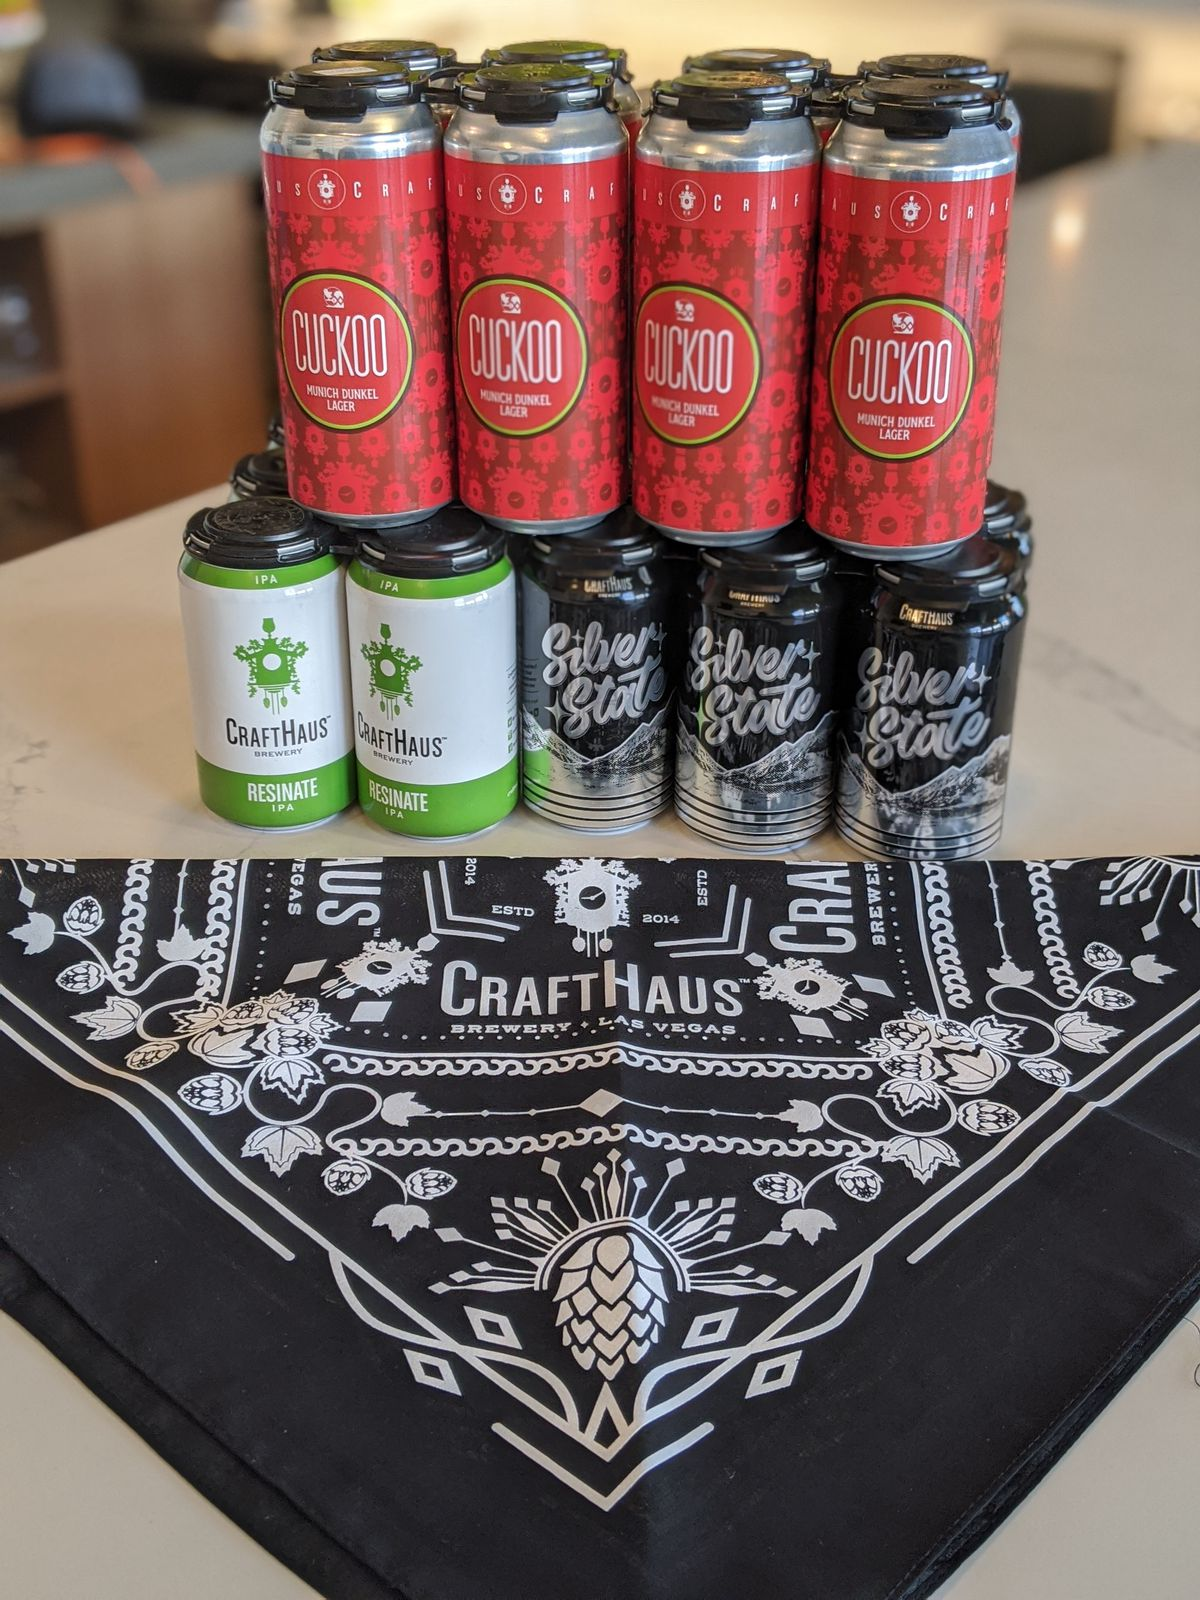 A black and white bandana with cans of beers behind it